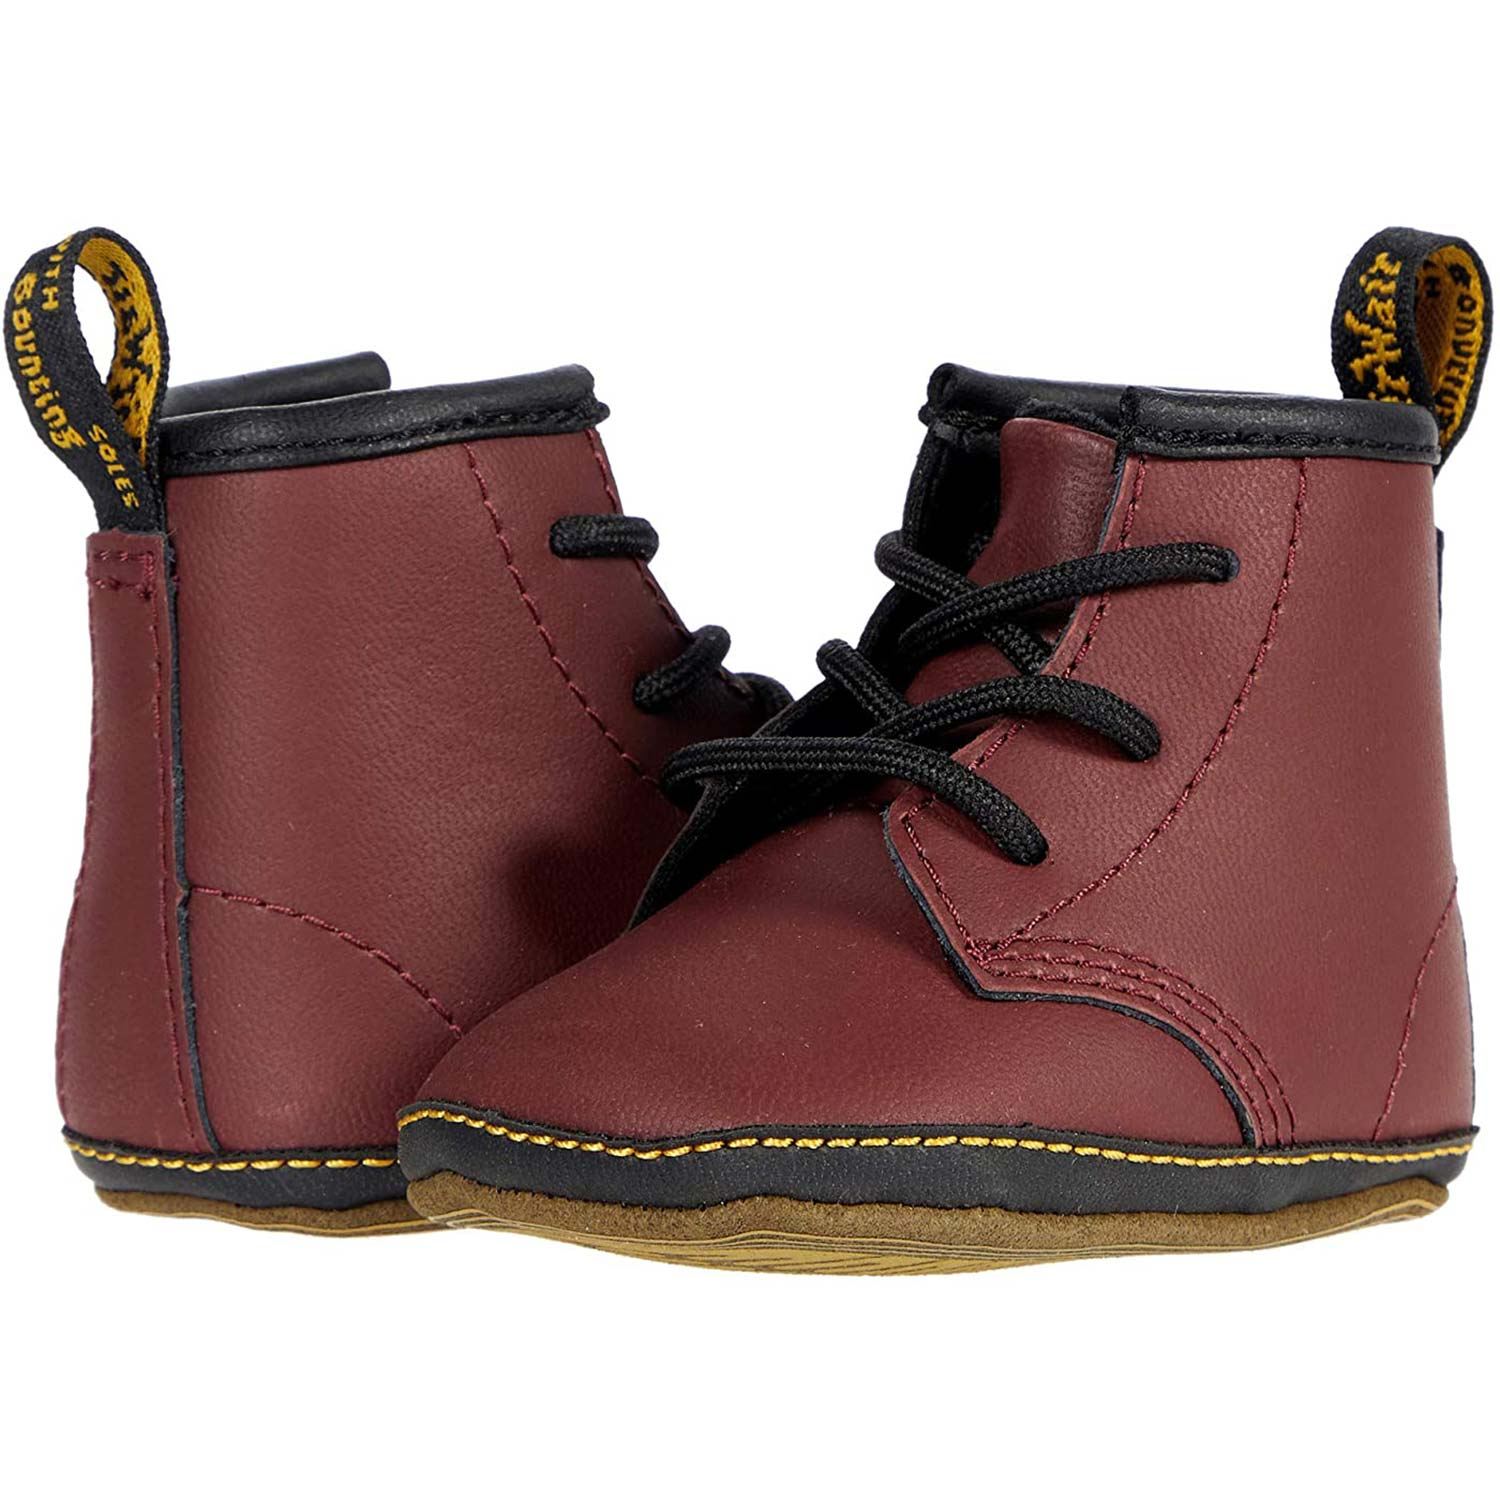 Dr. Martens Kids Collection 1460 Crib